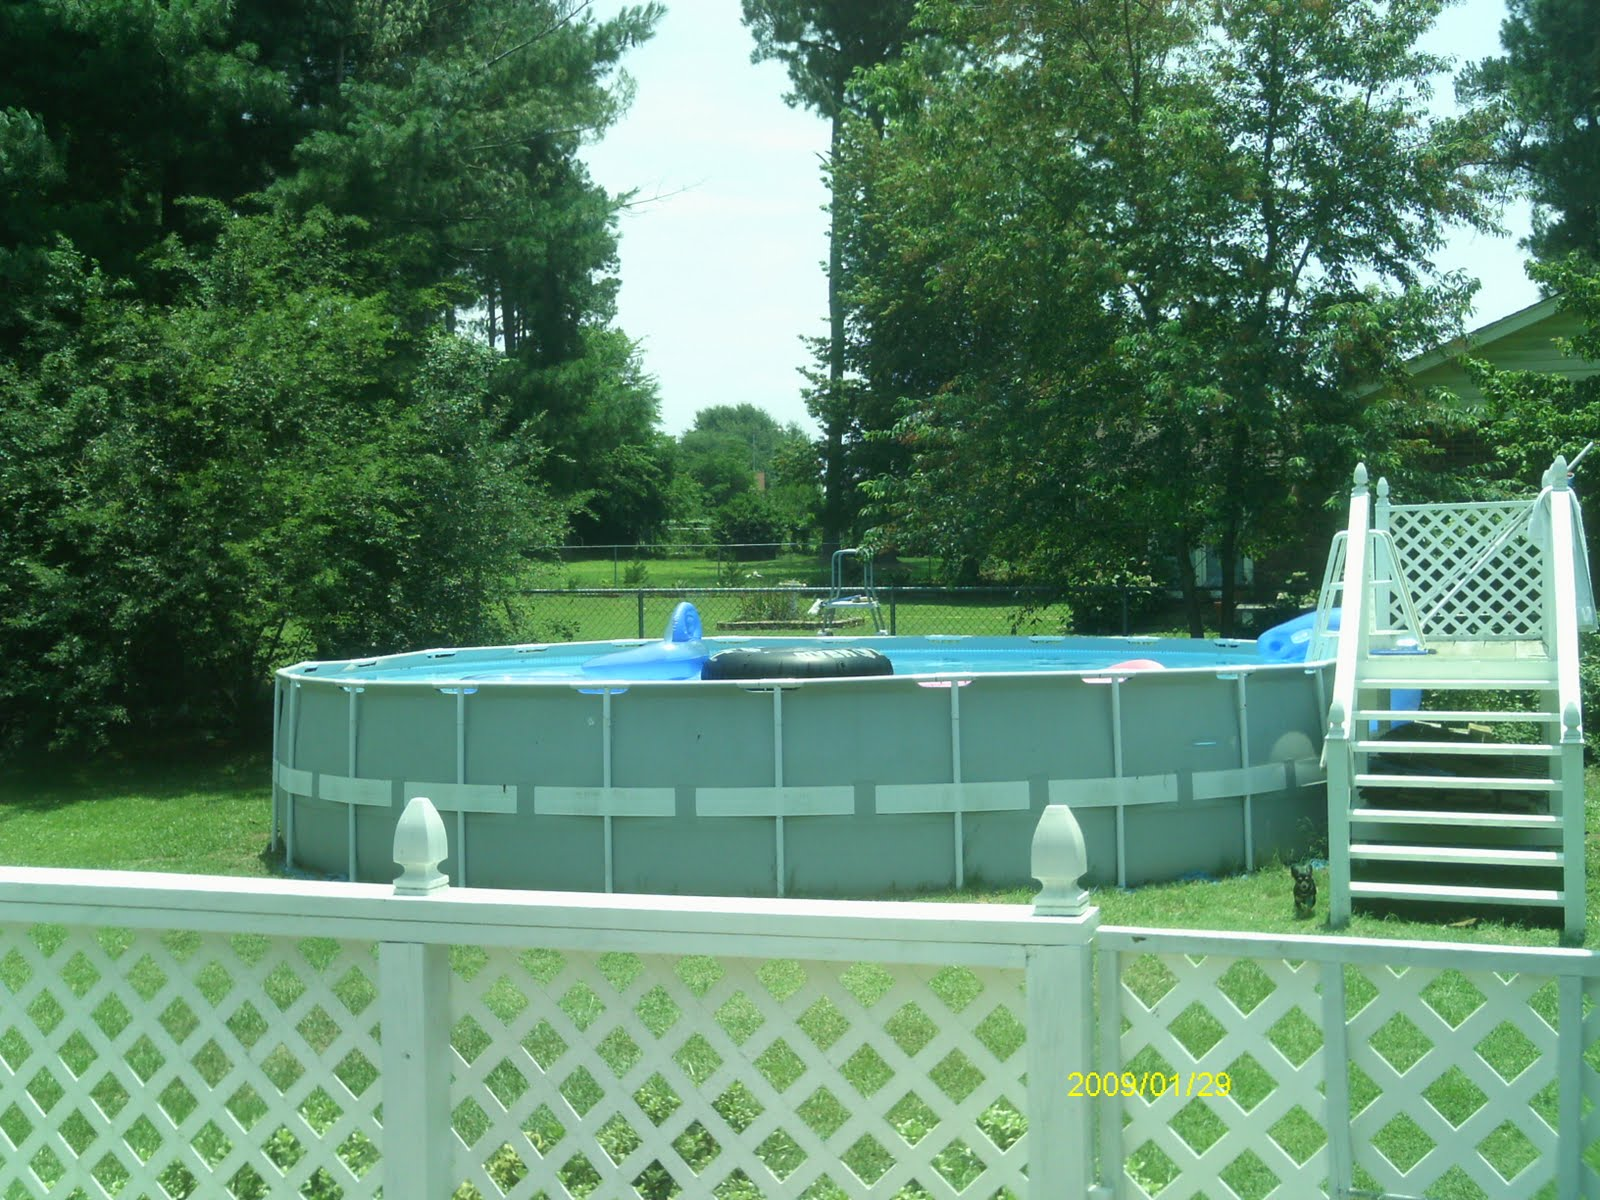 intex 24 x 52 metal frame above ground pool - Intex Above Ground Pool Decks